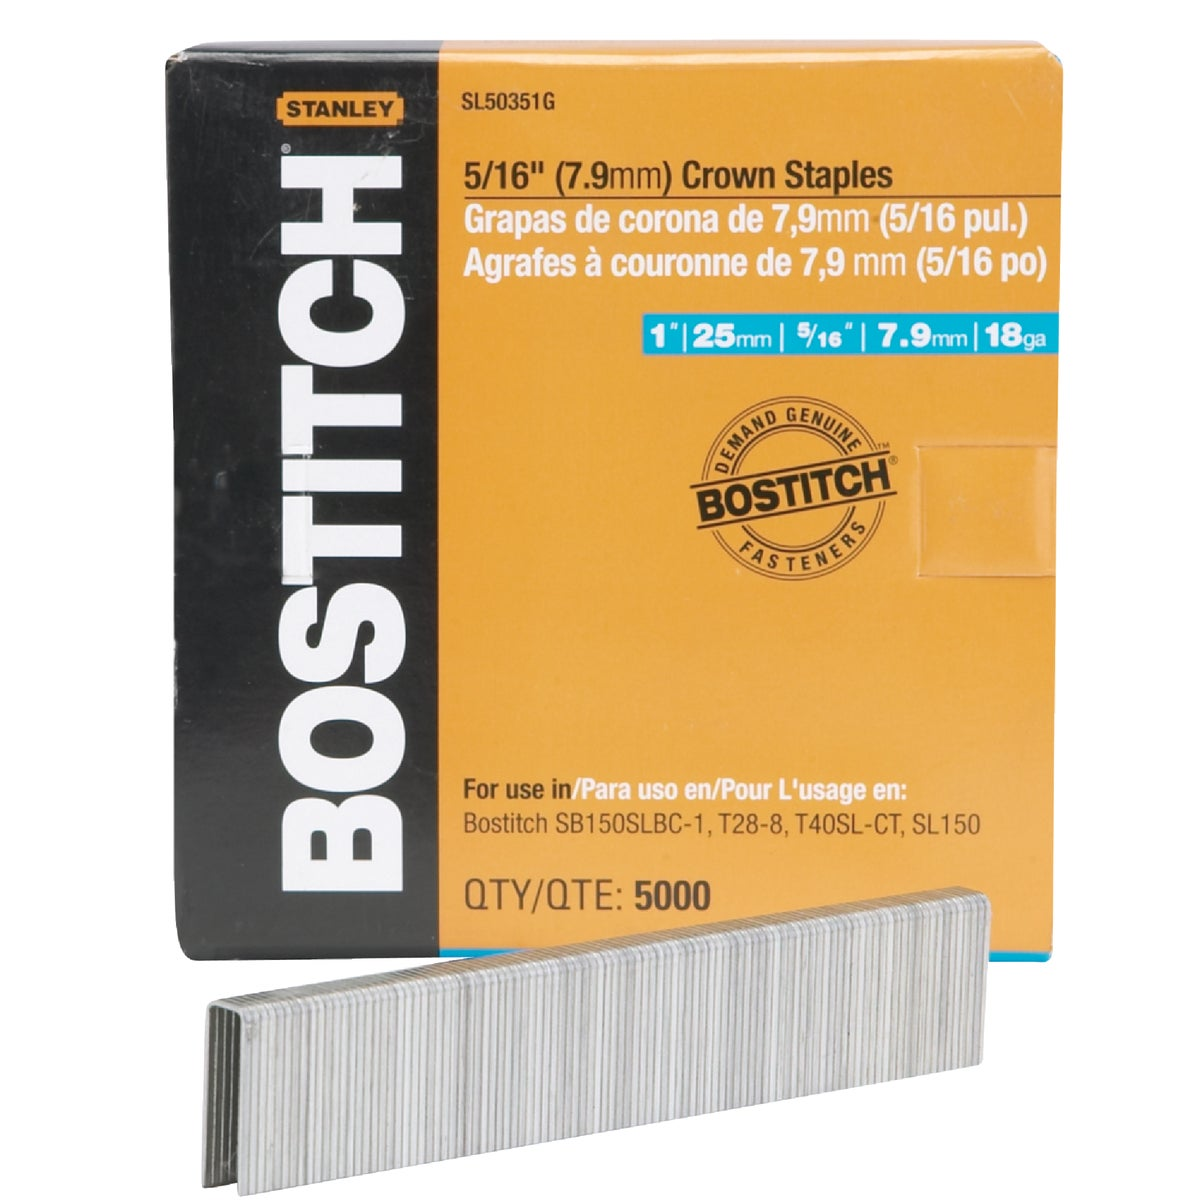 "1"" STAPLE - SL50351G by Stanley Bostitch"